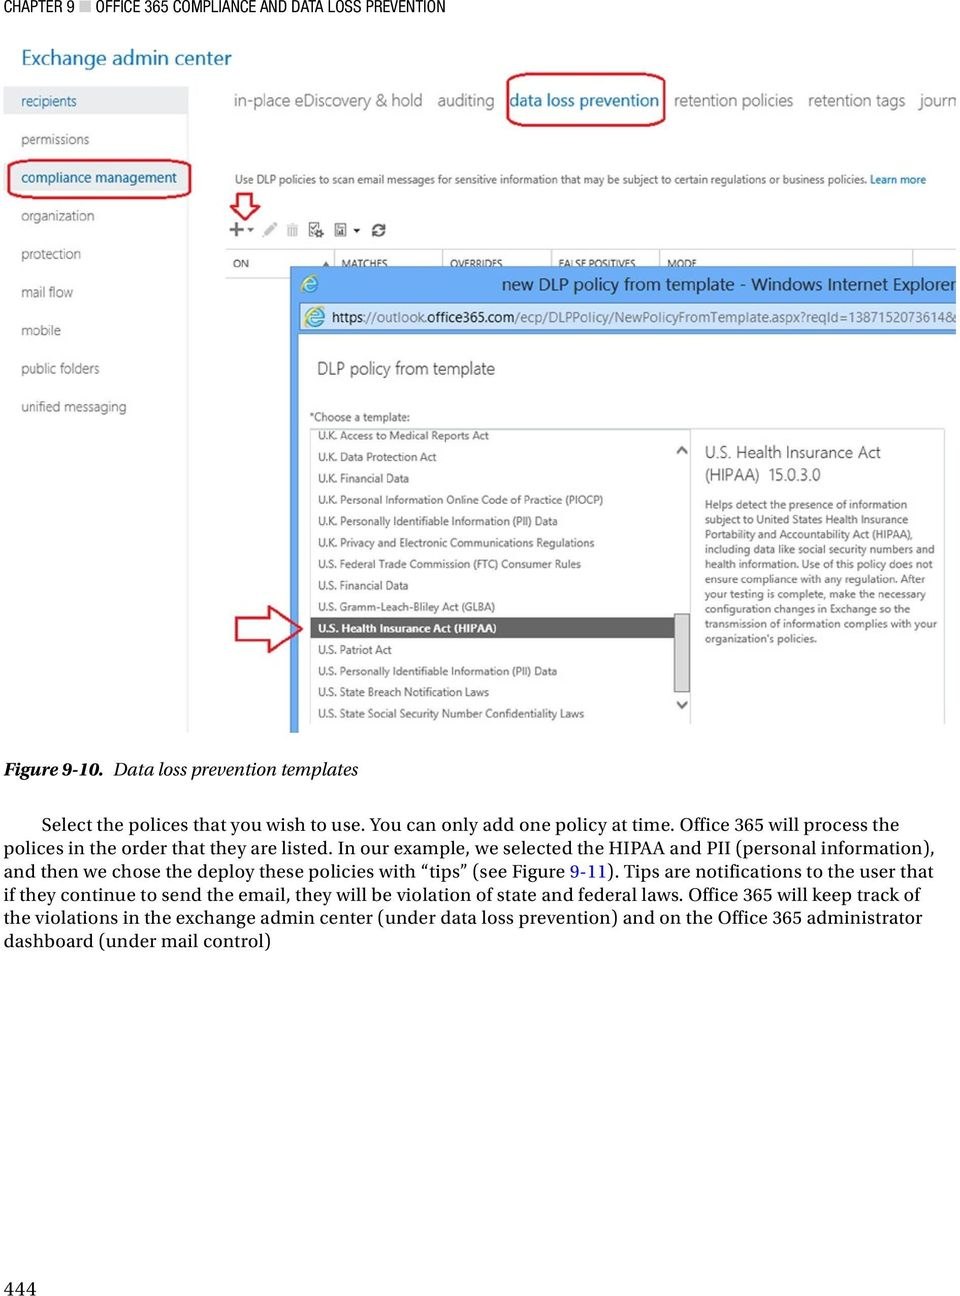 Office 365 Compliance and Data Loss Prevention - PDF